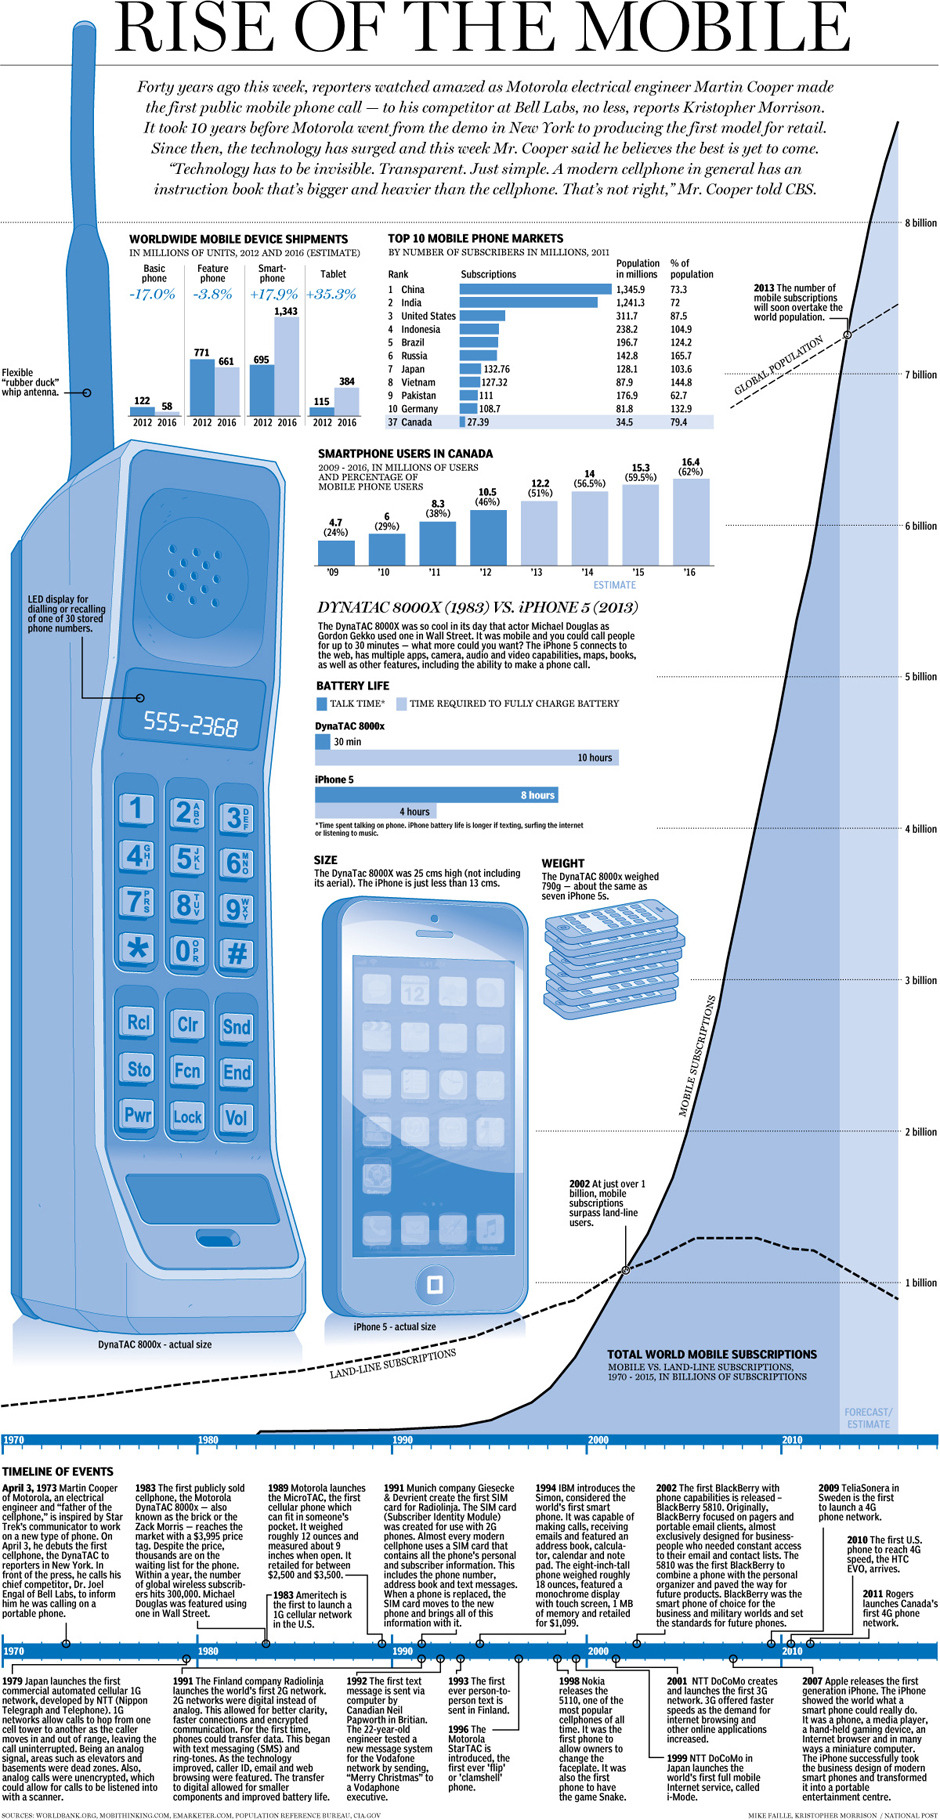 "Graphic: Rise of the mobile phoneForty years ago this week, reporters watched amazed as Motorola electrical engineer Martin Cooper made the first public mobile phone call — to his competitor at Bell Labs, no less, reports Kristopher Morrison. It took 10 years before Motorola went from demo in New York to producing the first model for retail. Since then the technology has surged and this week Mr. Cooper said he believes the best is yet to come. ""Technology has to be invisible. Transparent. Just simple. A modern cellphone in general has an instruction book that's bigger and heavier than the cellphone. That's not right,"" Mr. Cooper told CBS."